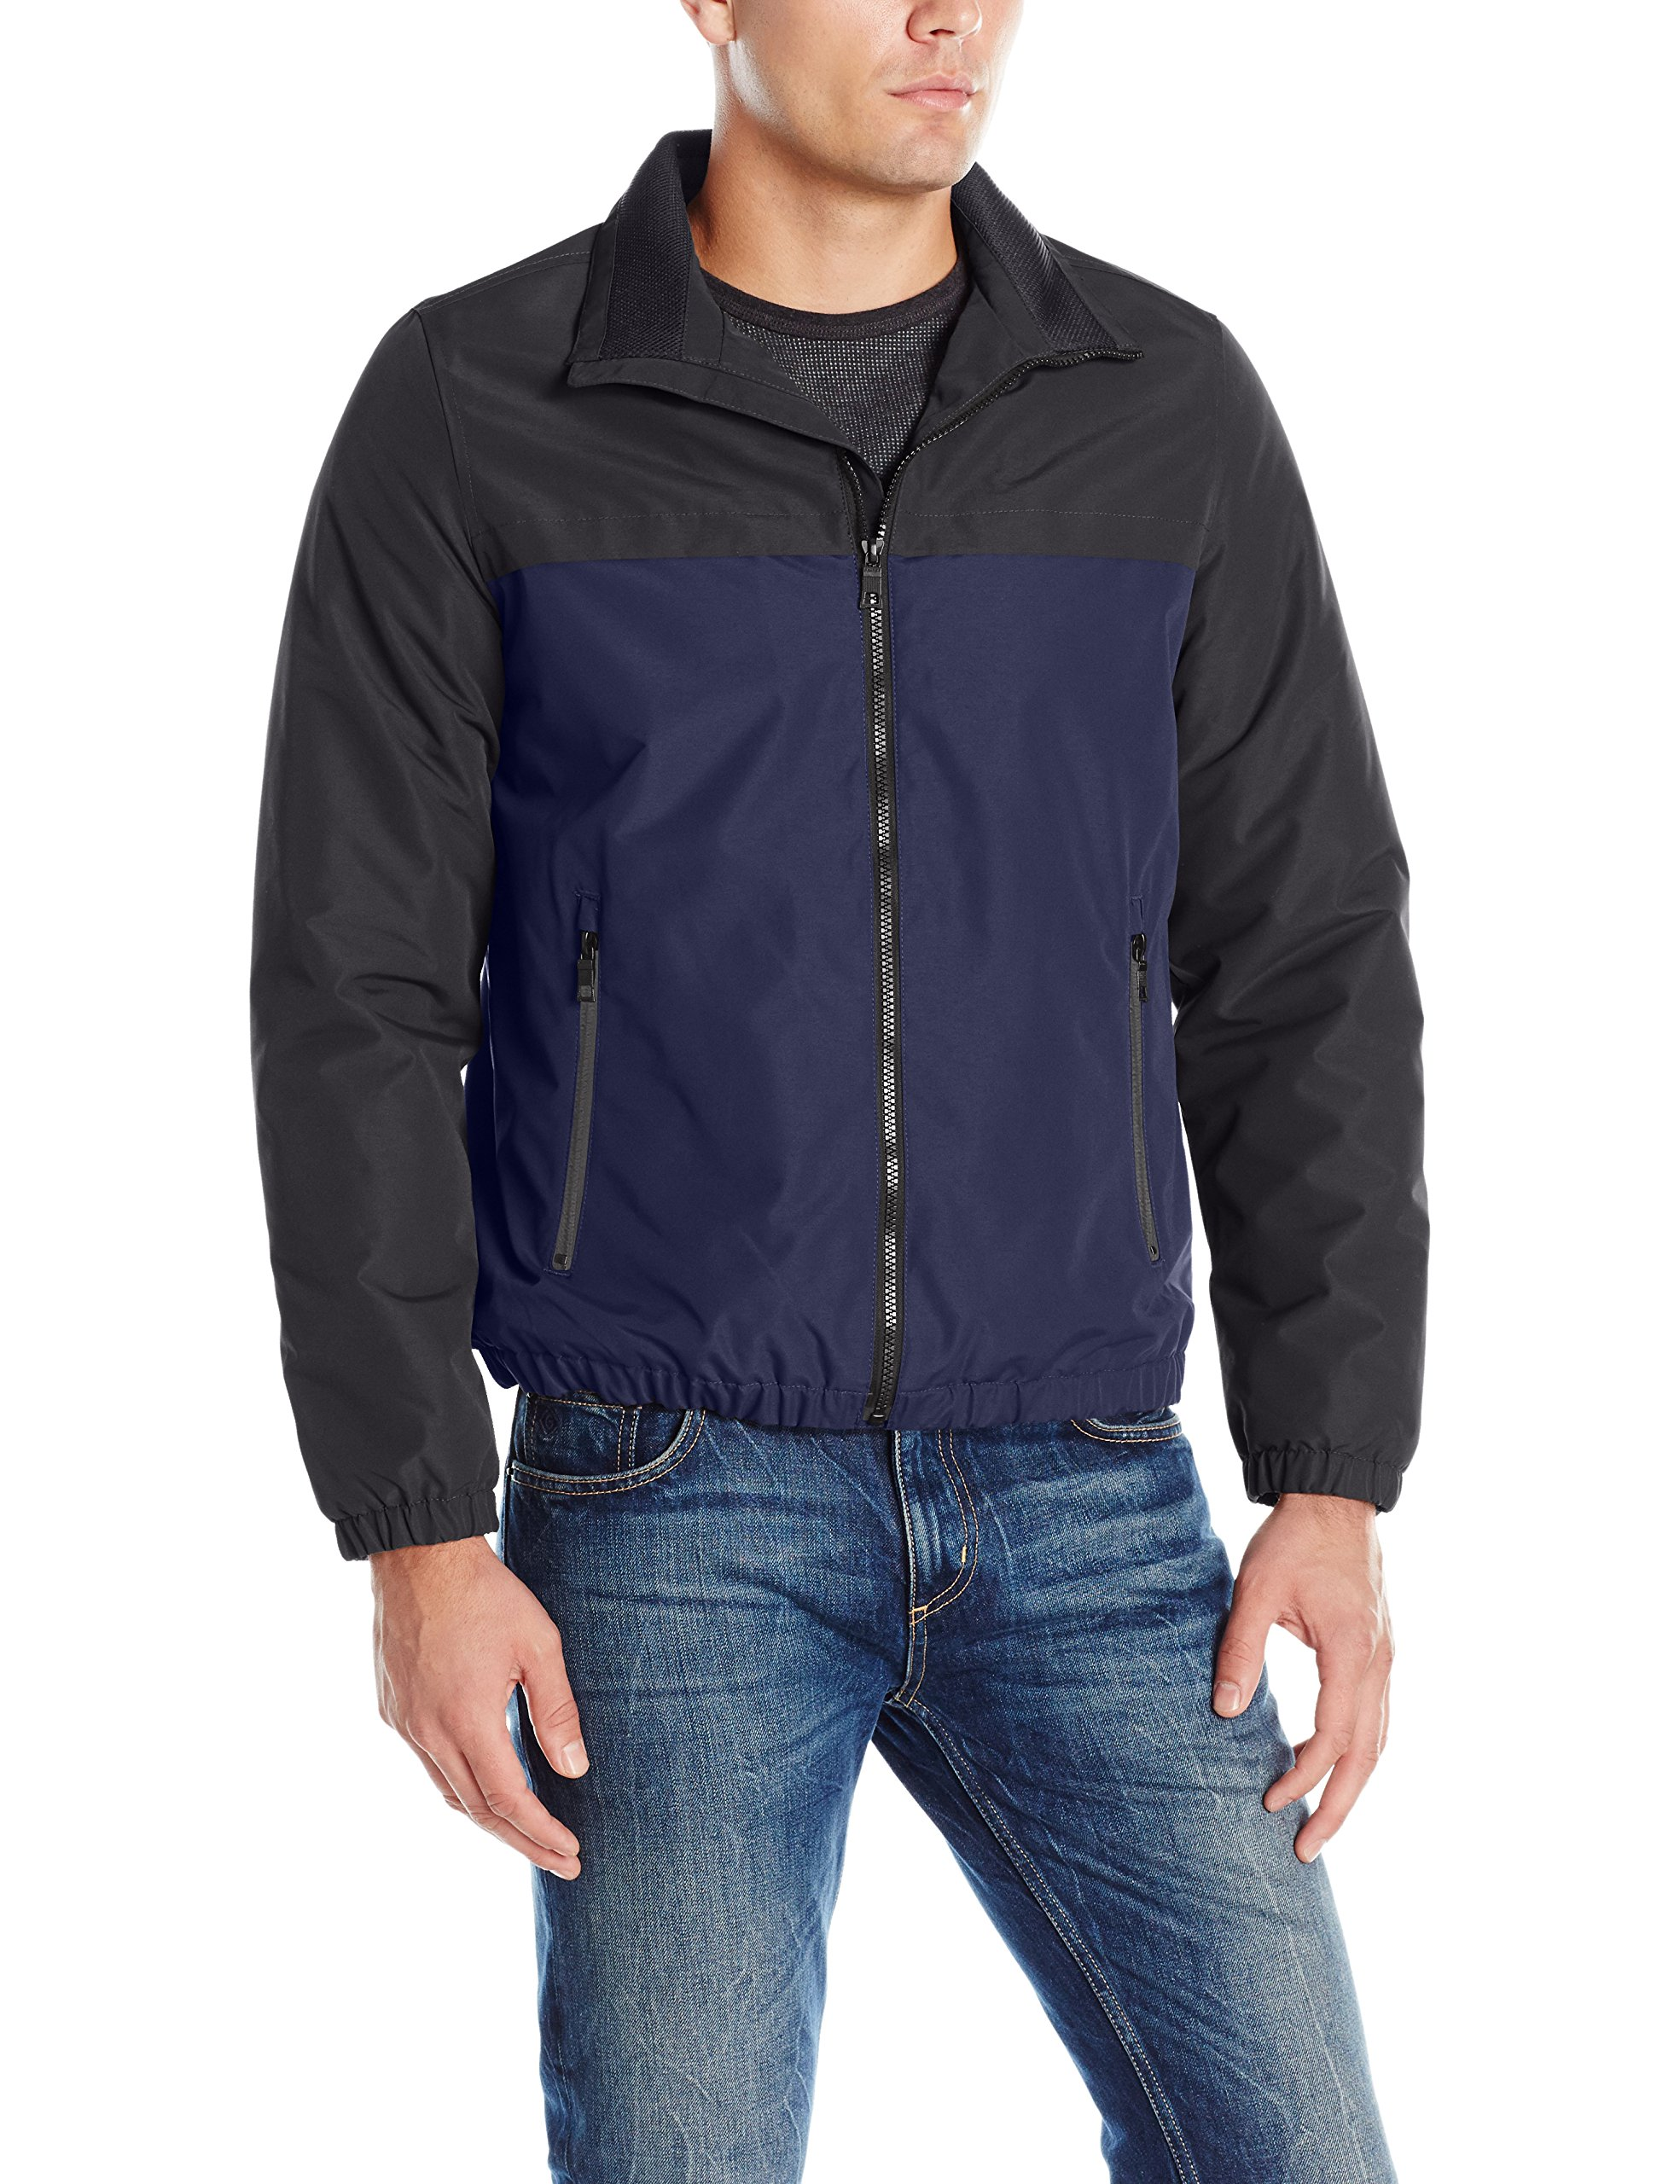 Nautica Men's Brushed Radiance Zip Front Jacket, Black/Navy, M by Nautica